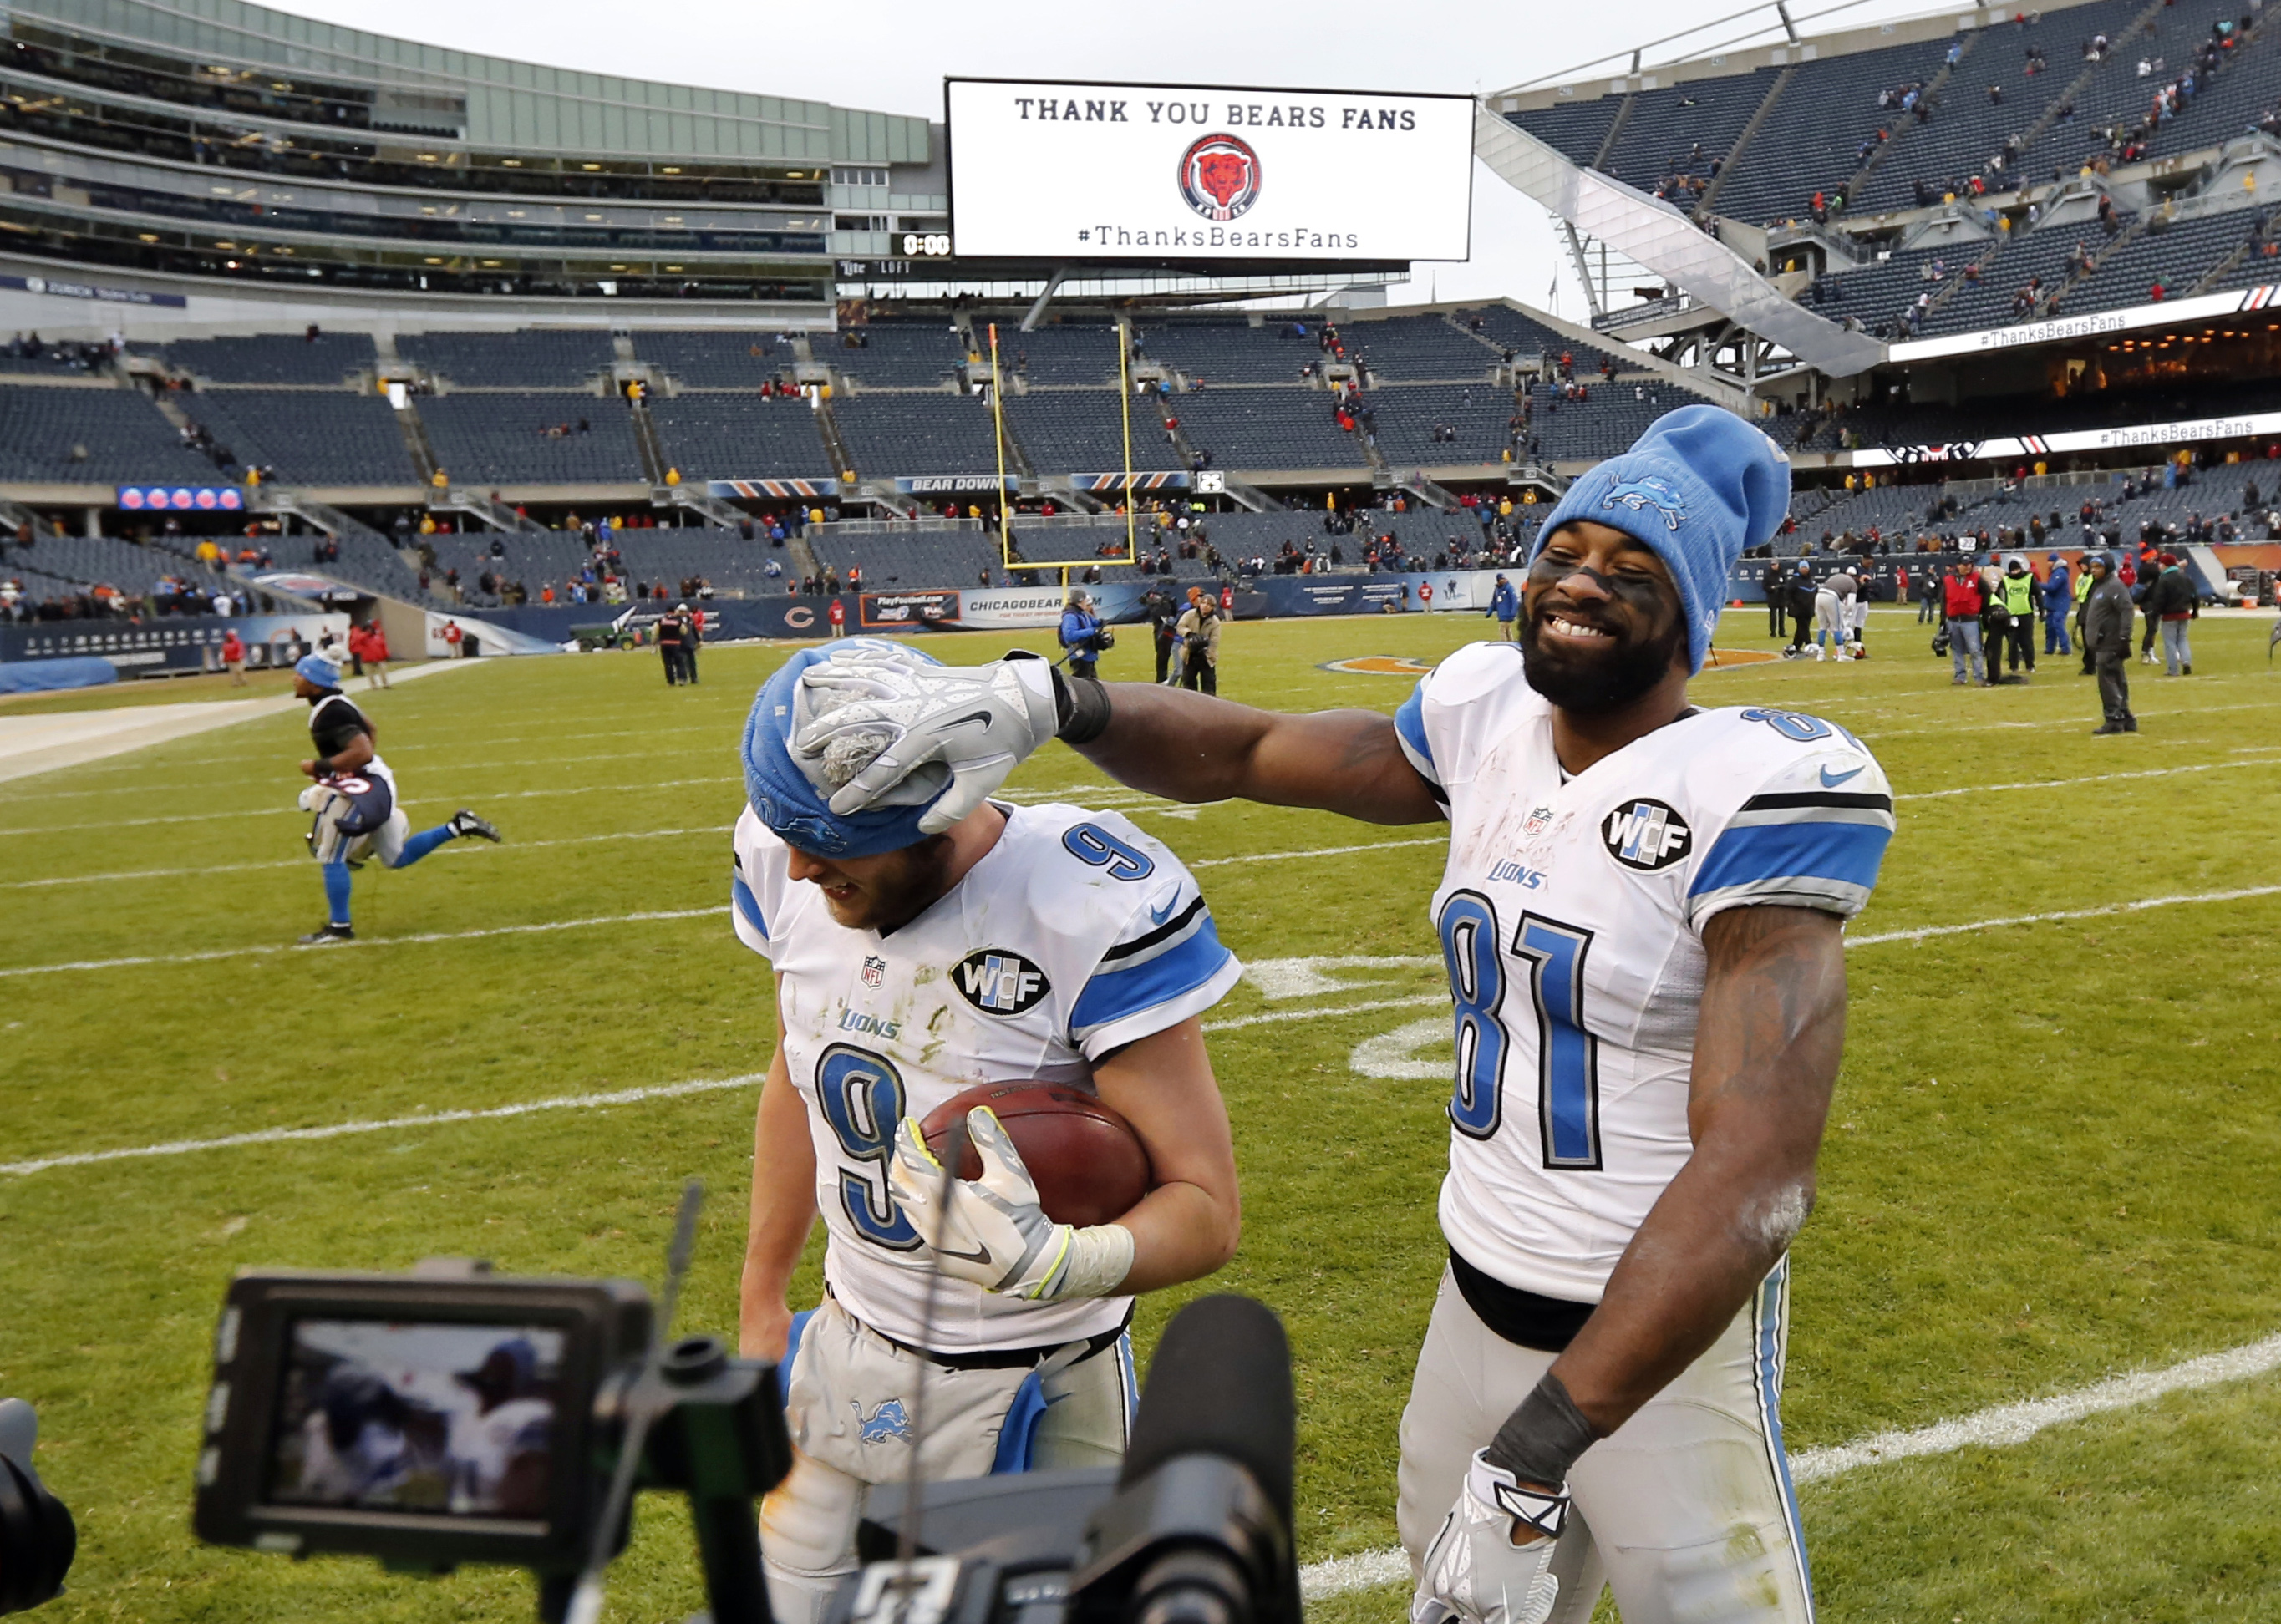 FILE - In this Jan. 3, 2016, file photo, Detroit Lions wide receiver Calvin Johnson (81) clowns around with quarterback Matthew Stafford (9) as they walk off the field after an NFL football game against the Chicago Bears in Chicago. The Lions have kicked